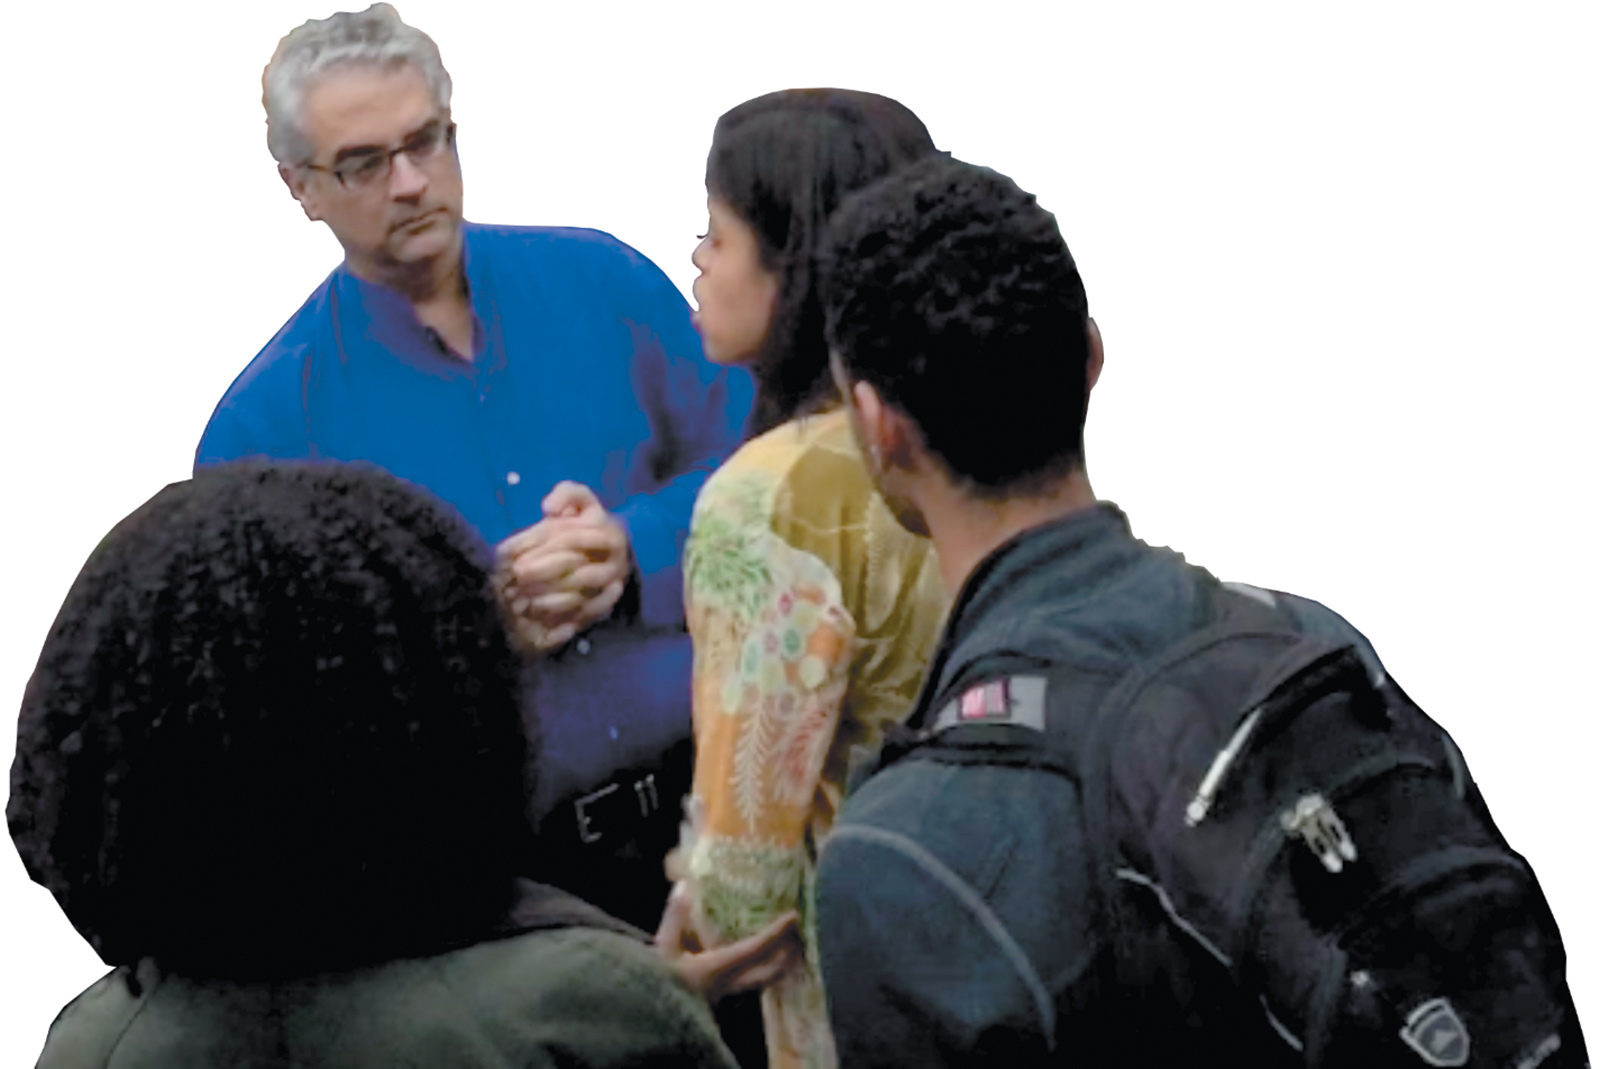 A still from the video showing Nicholas Christakis being confronted by Yale students, November 5, 2015